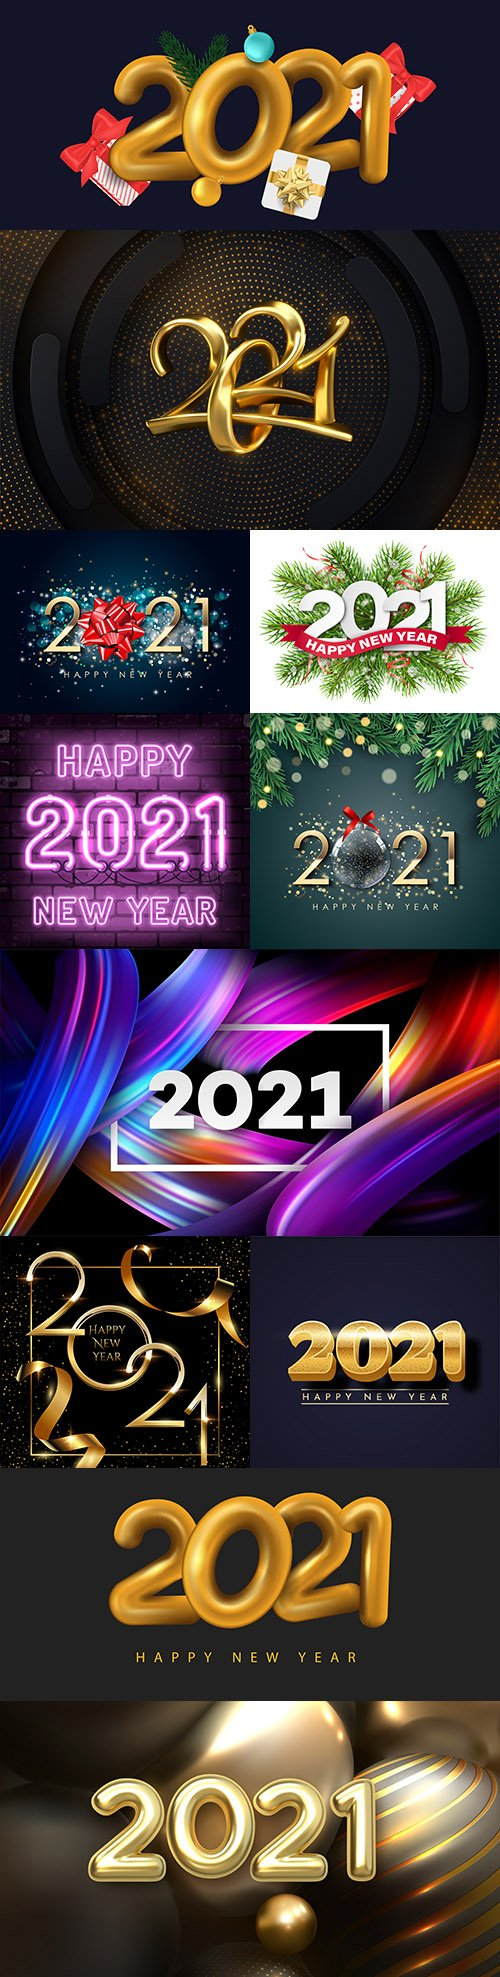 Happy New Year 2021 decorative design inscription